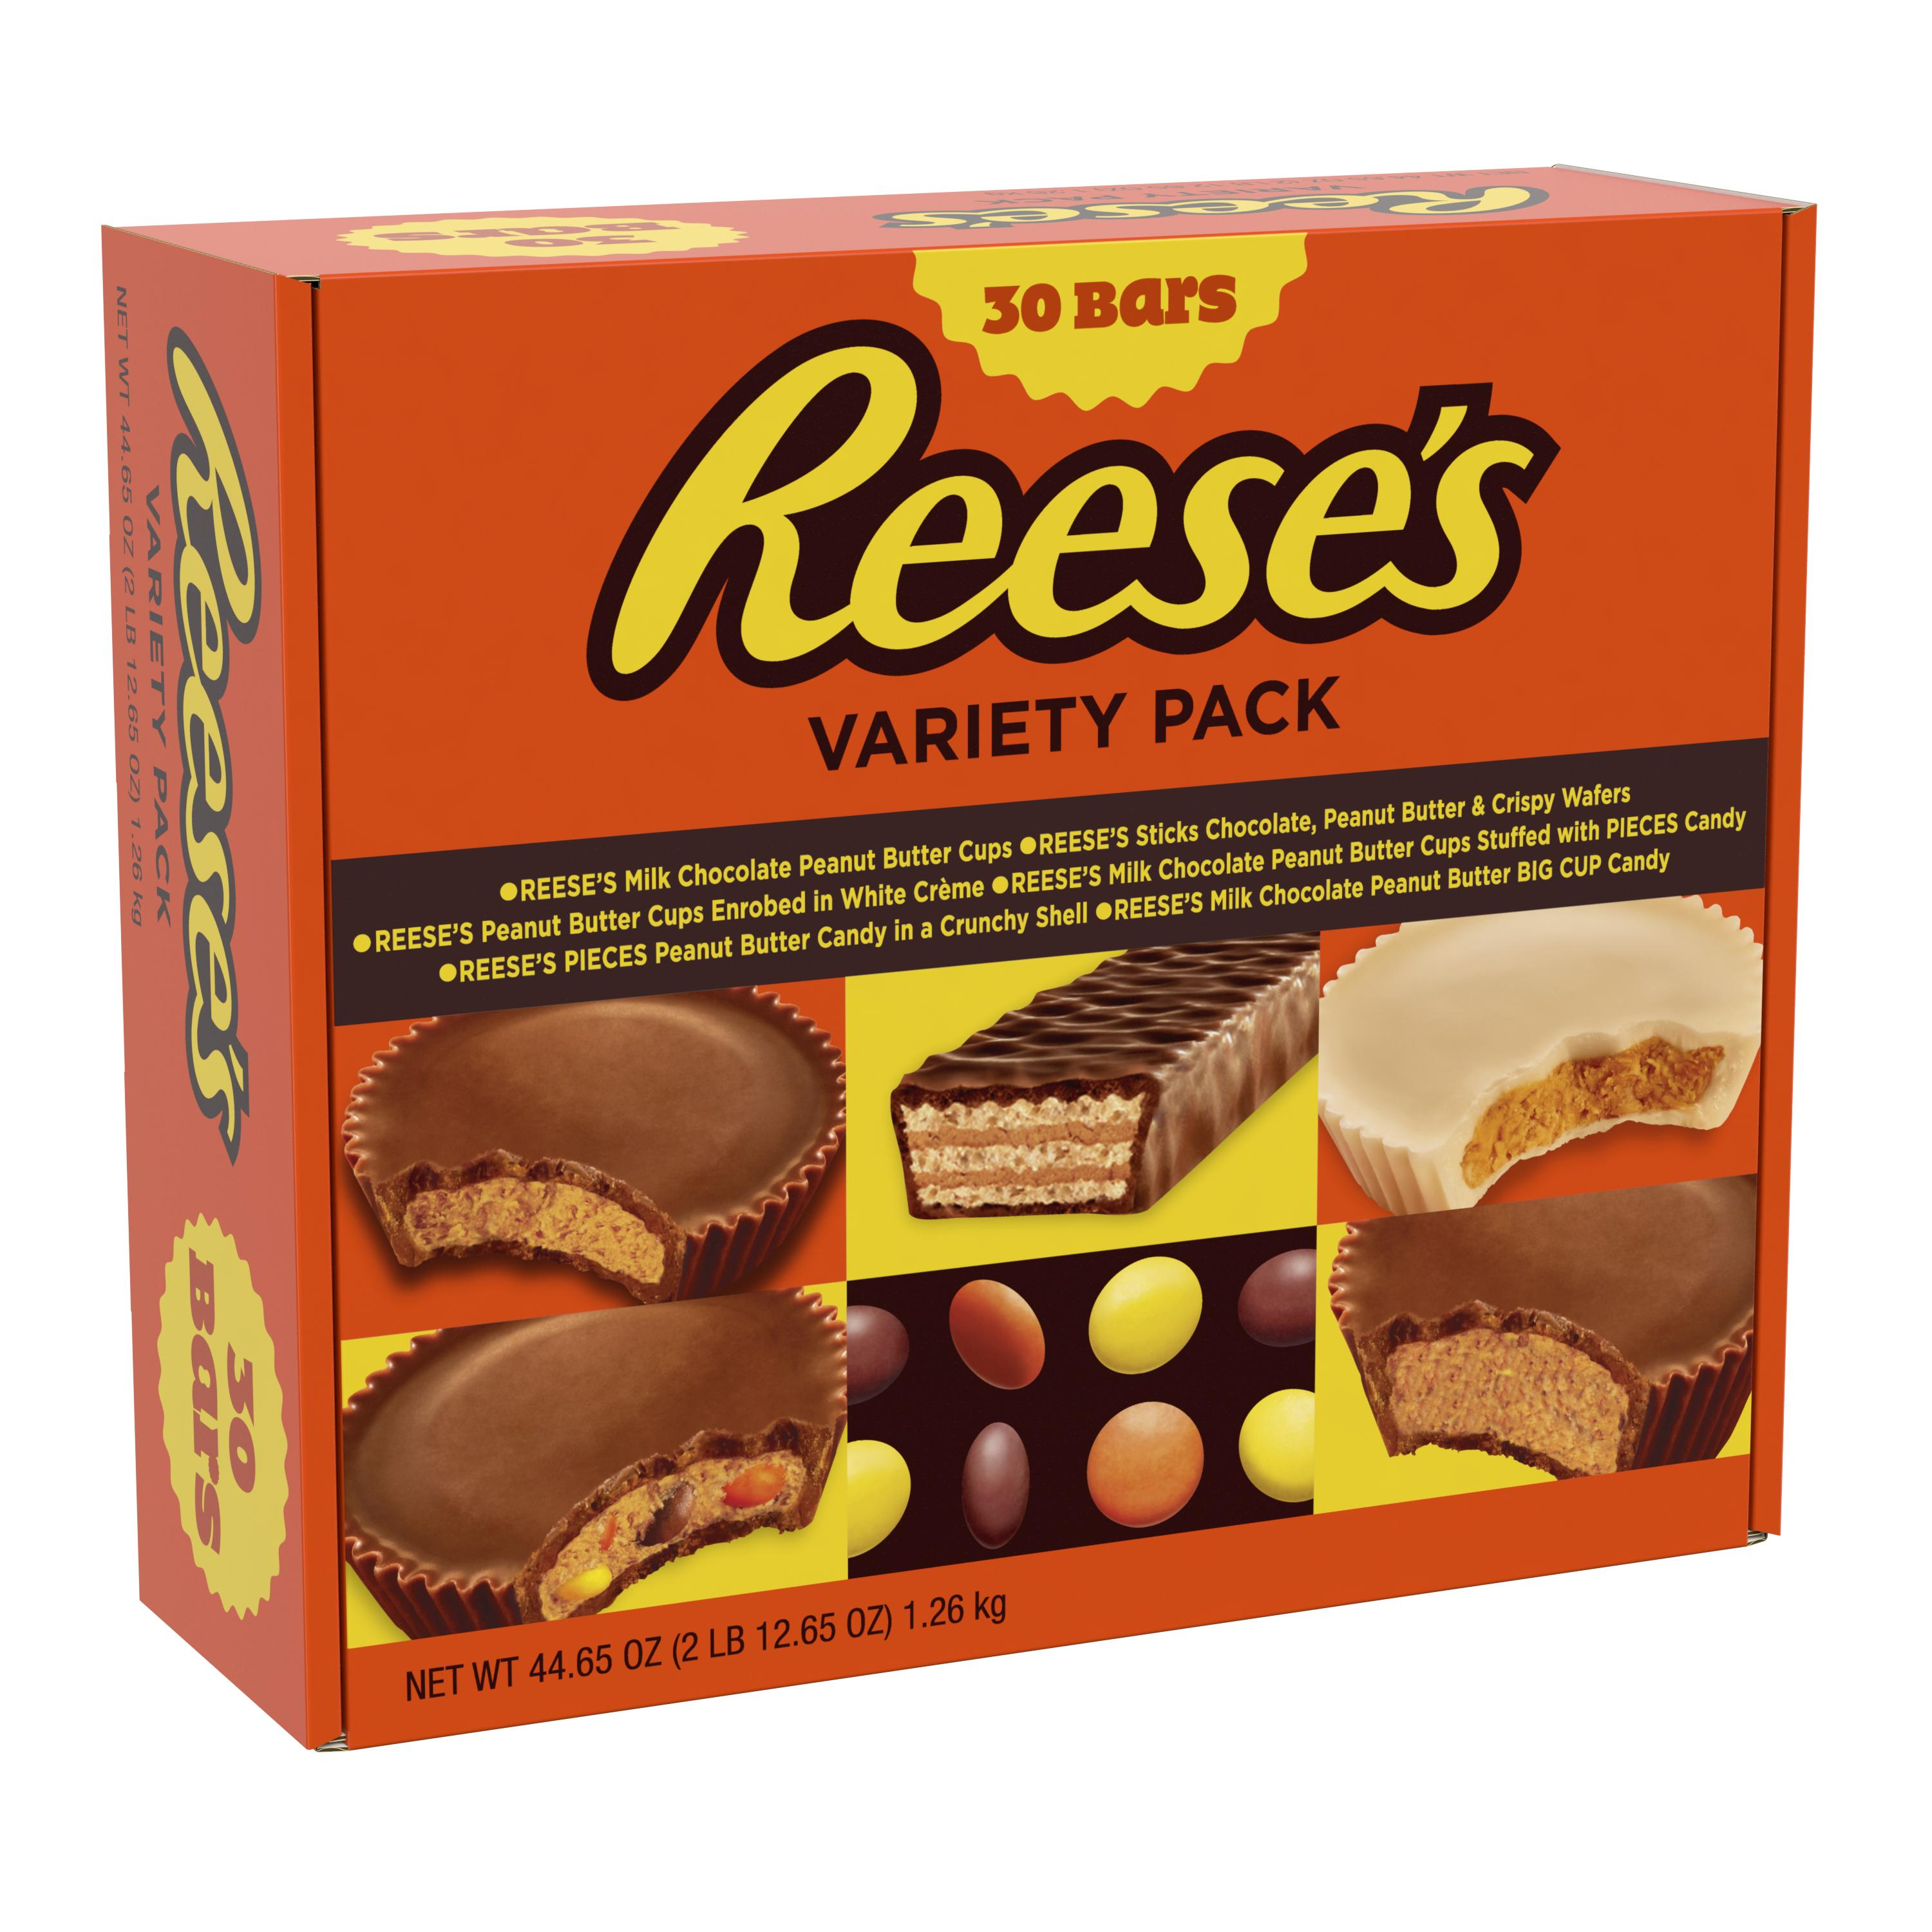 Reese's, Peanut Butter Variety Pack Assortment, 30 Ct